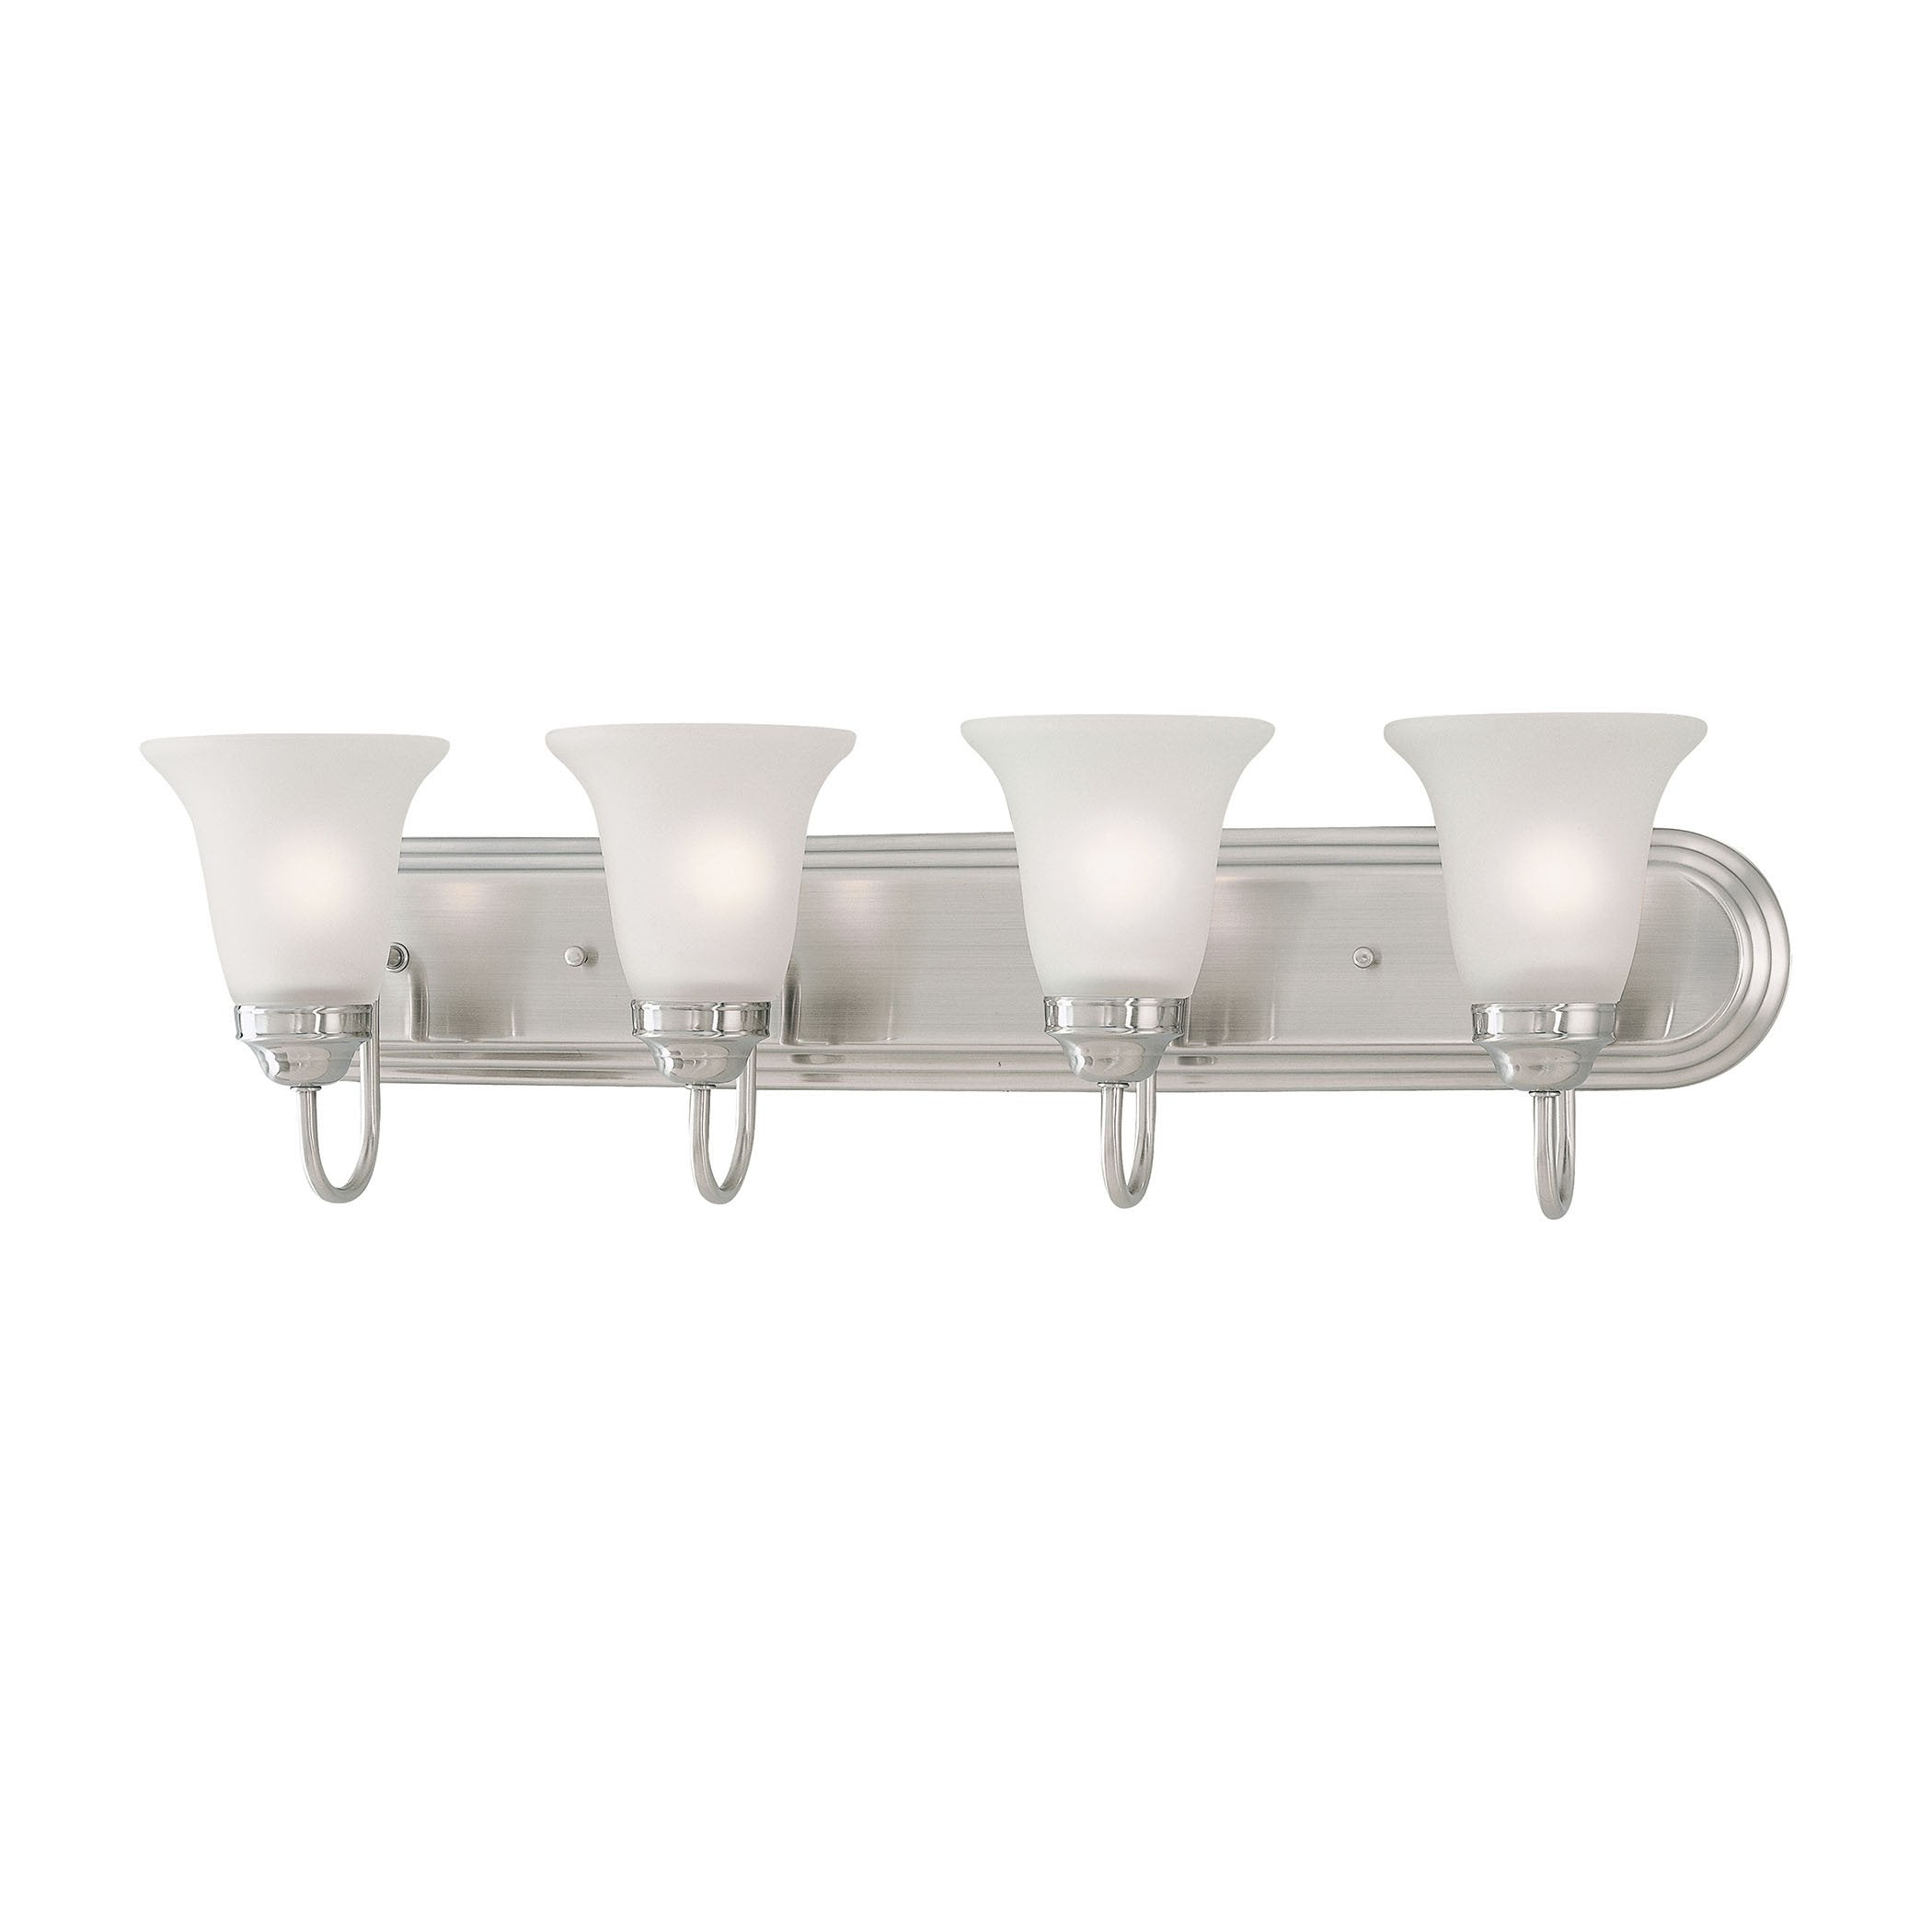 Thomas Lighting SL710441 Homestead Collection Satin Pewter Finish Transitional Wall Sconce